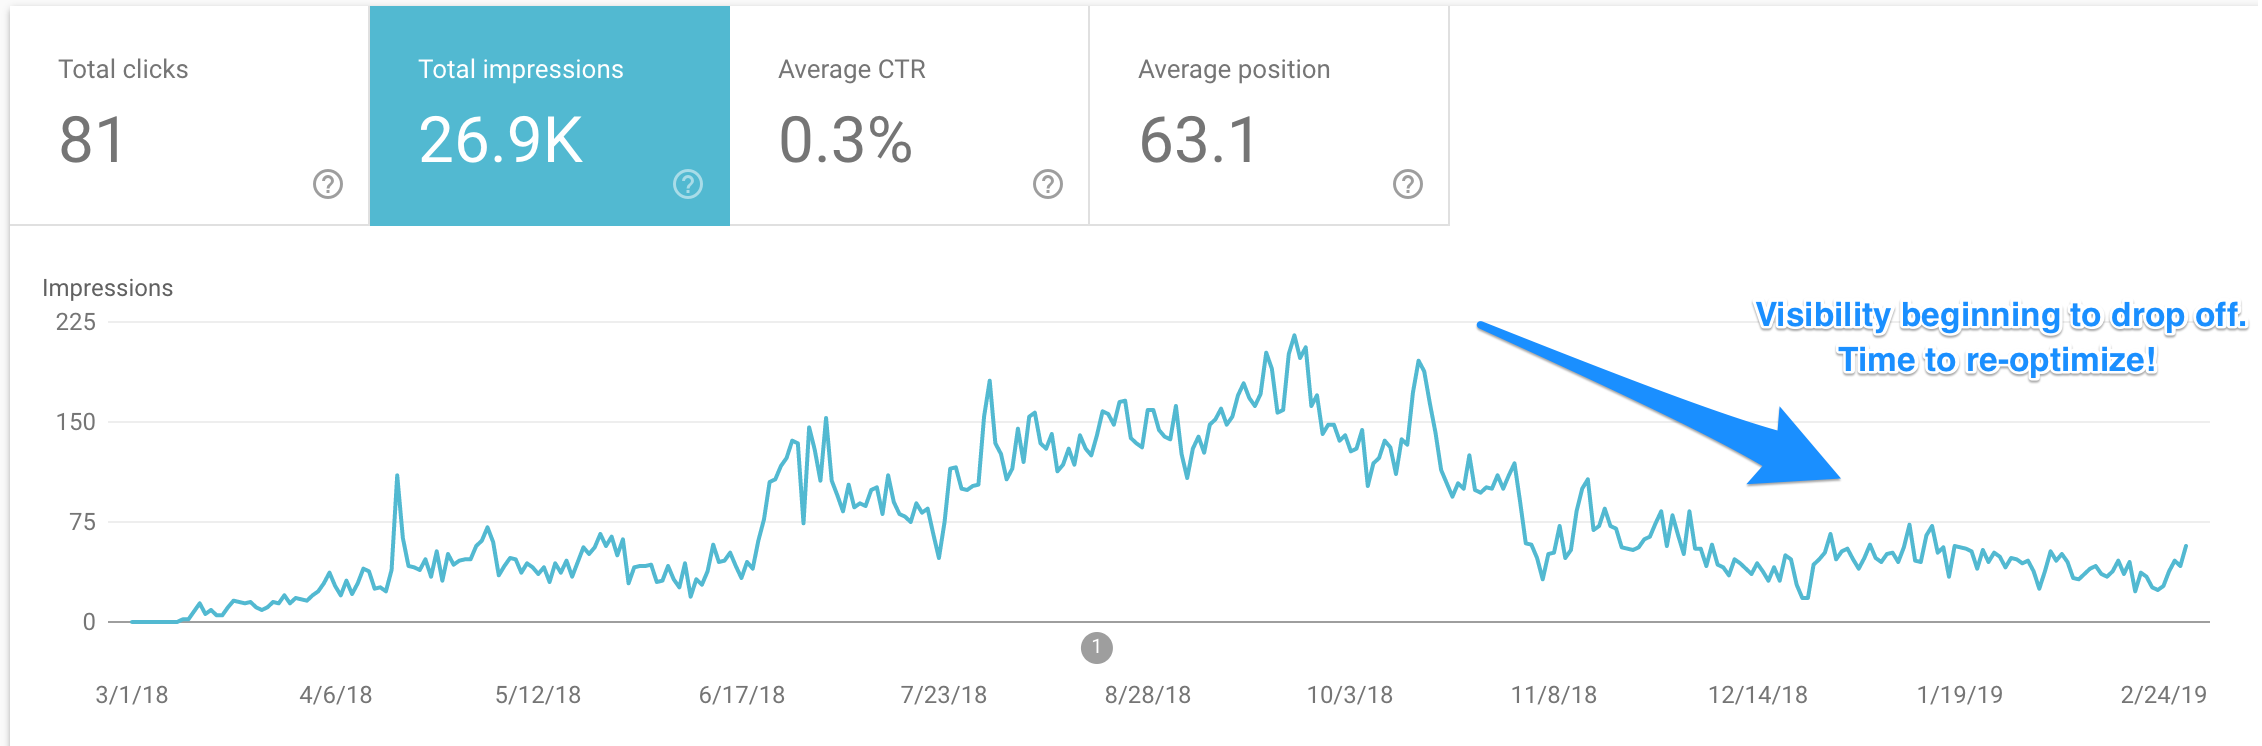 gsc - check impressions over time